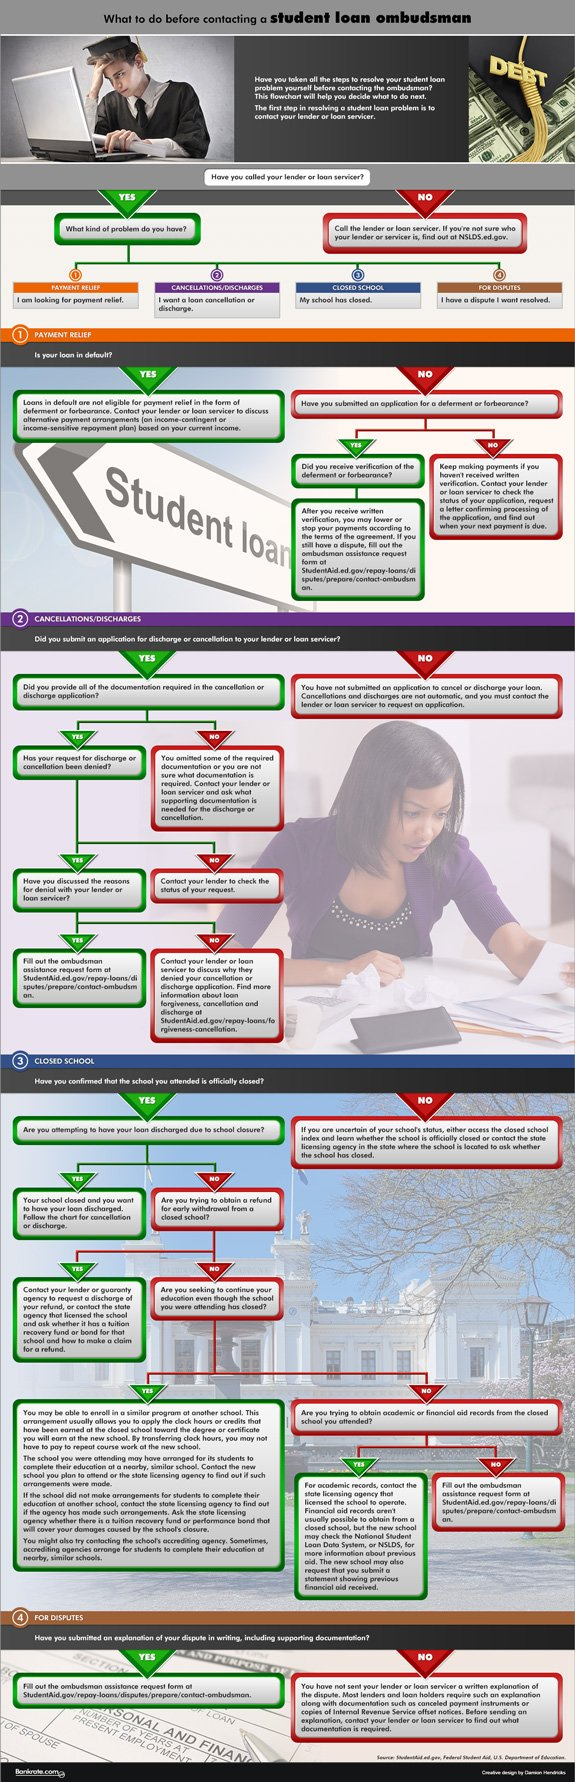 What to do before contacting student loan ombudsman